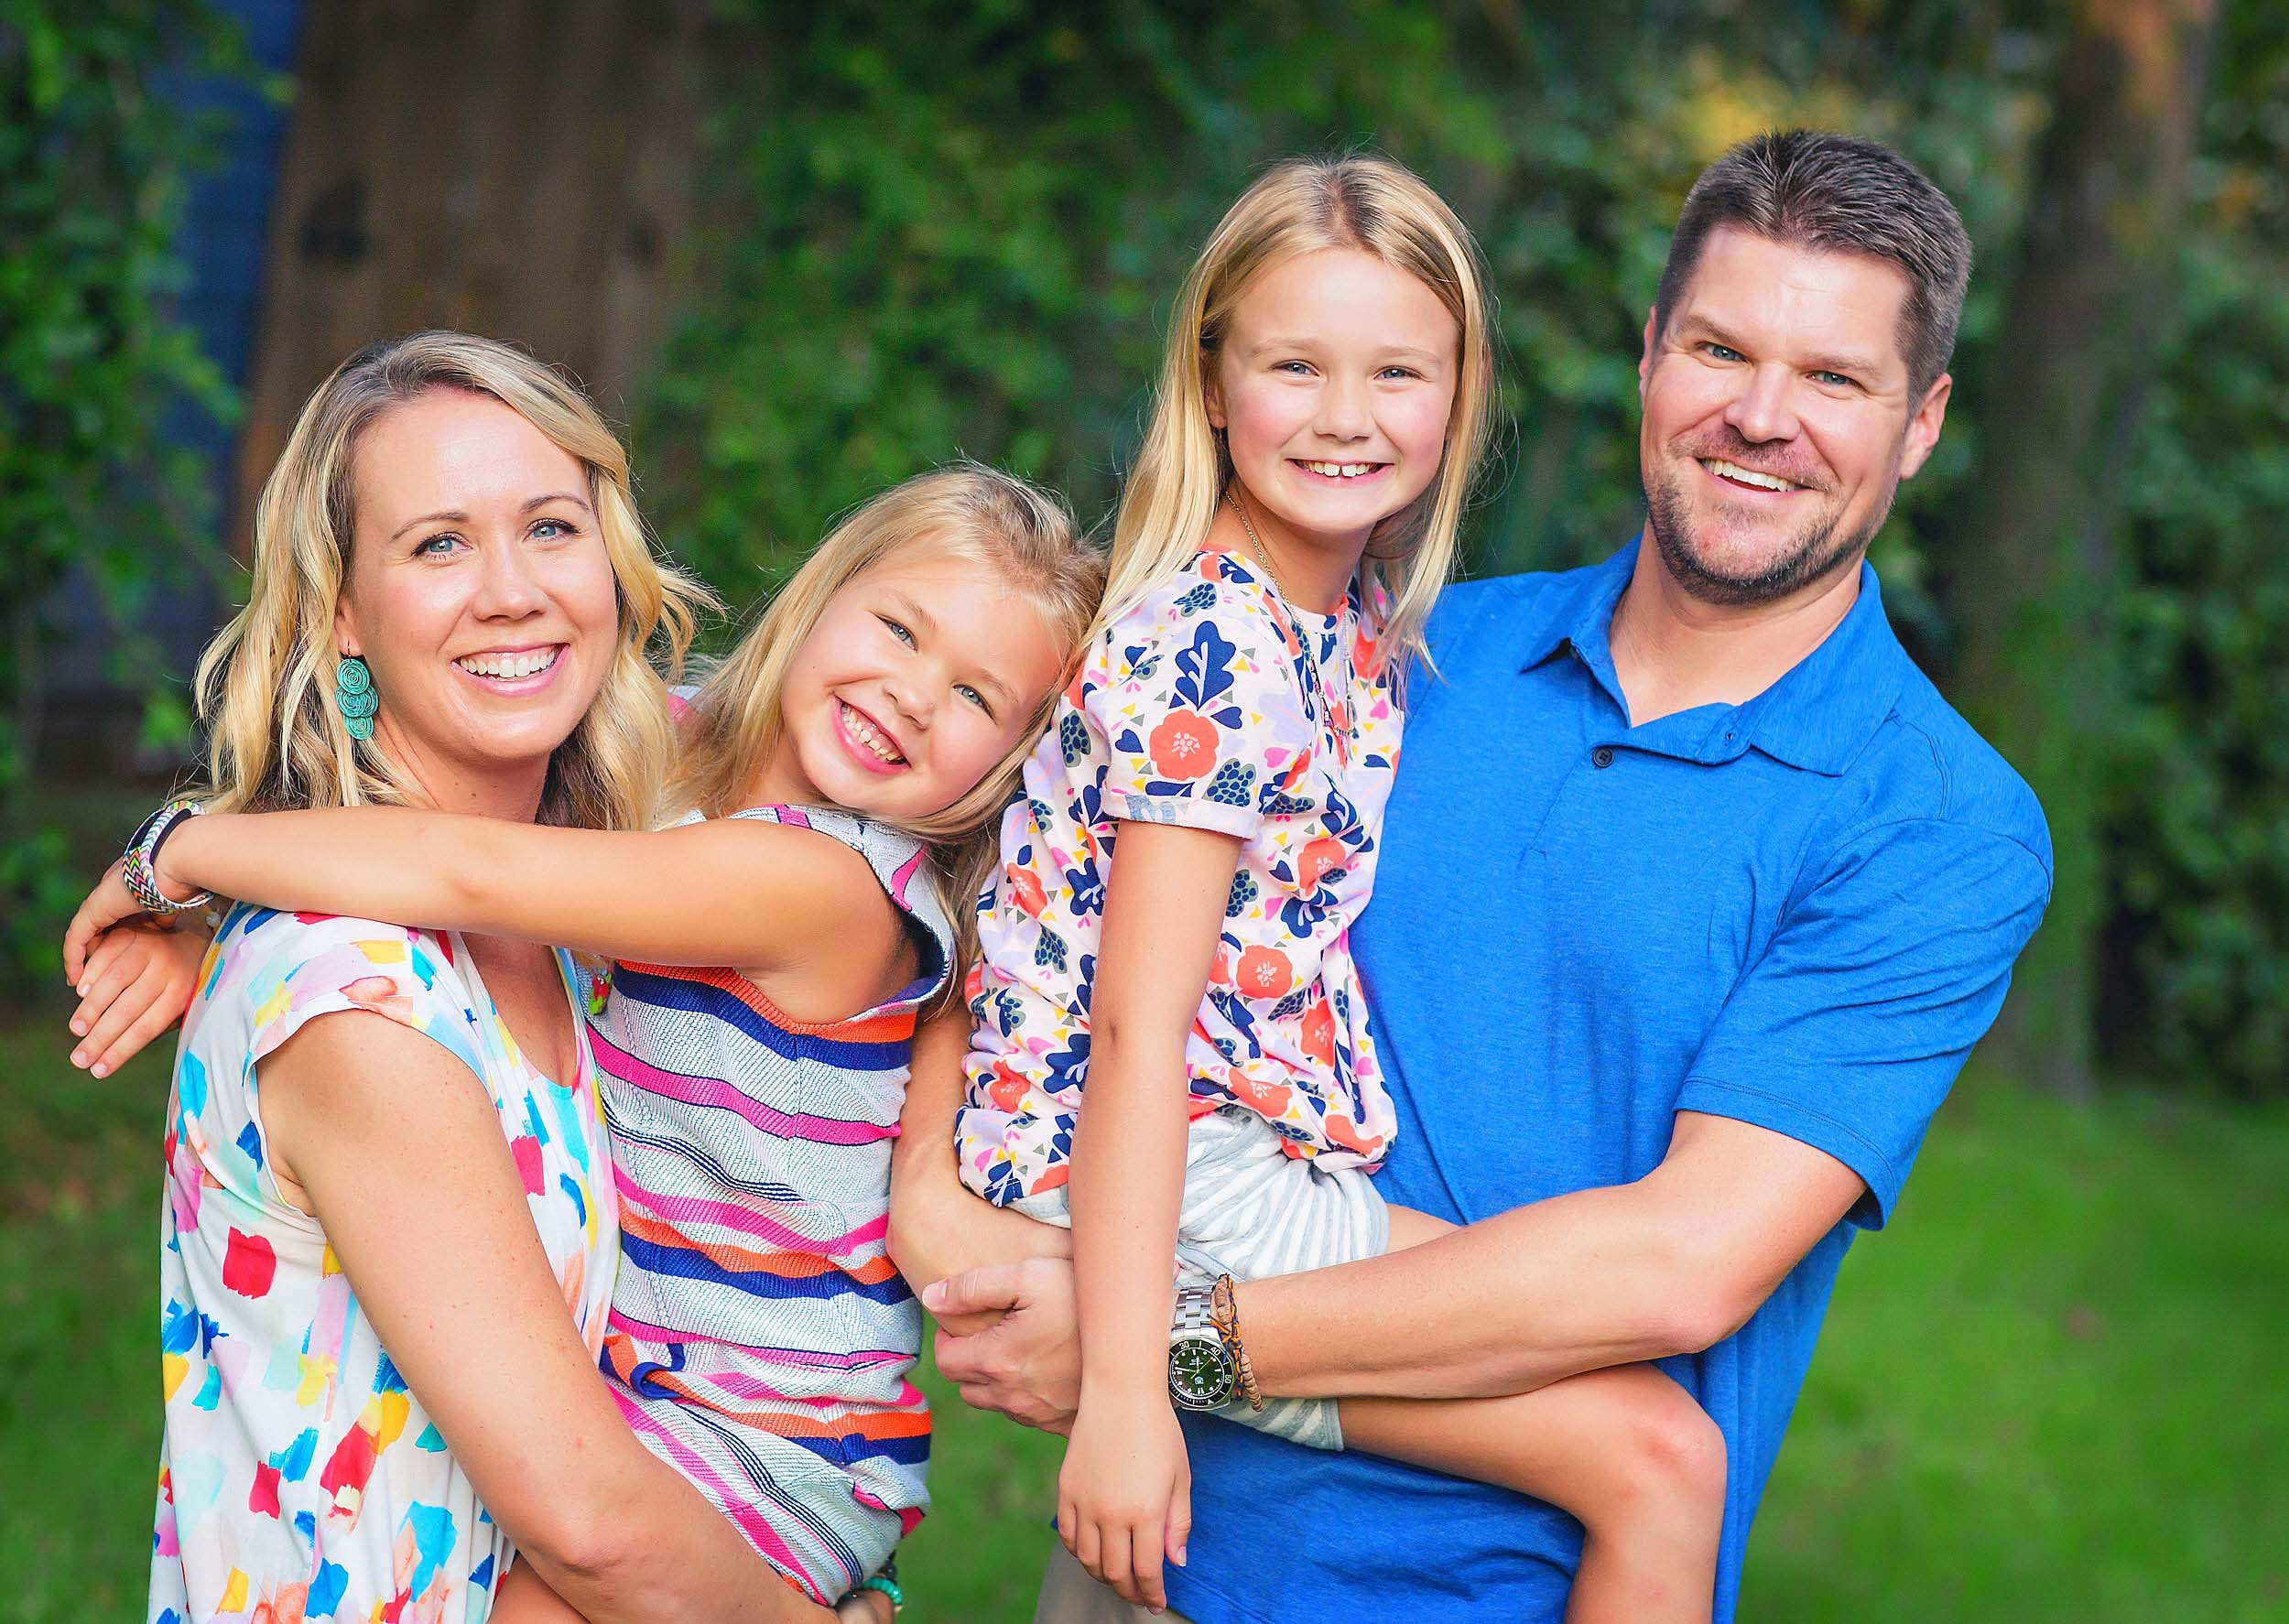 Family portrait in colorful and vibrant clothing by family photographer spryART photography in The Woodlands, Texas.